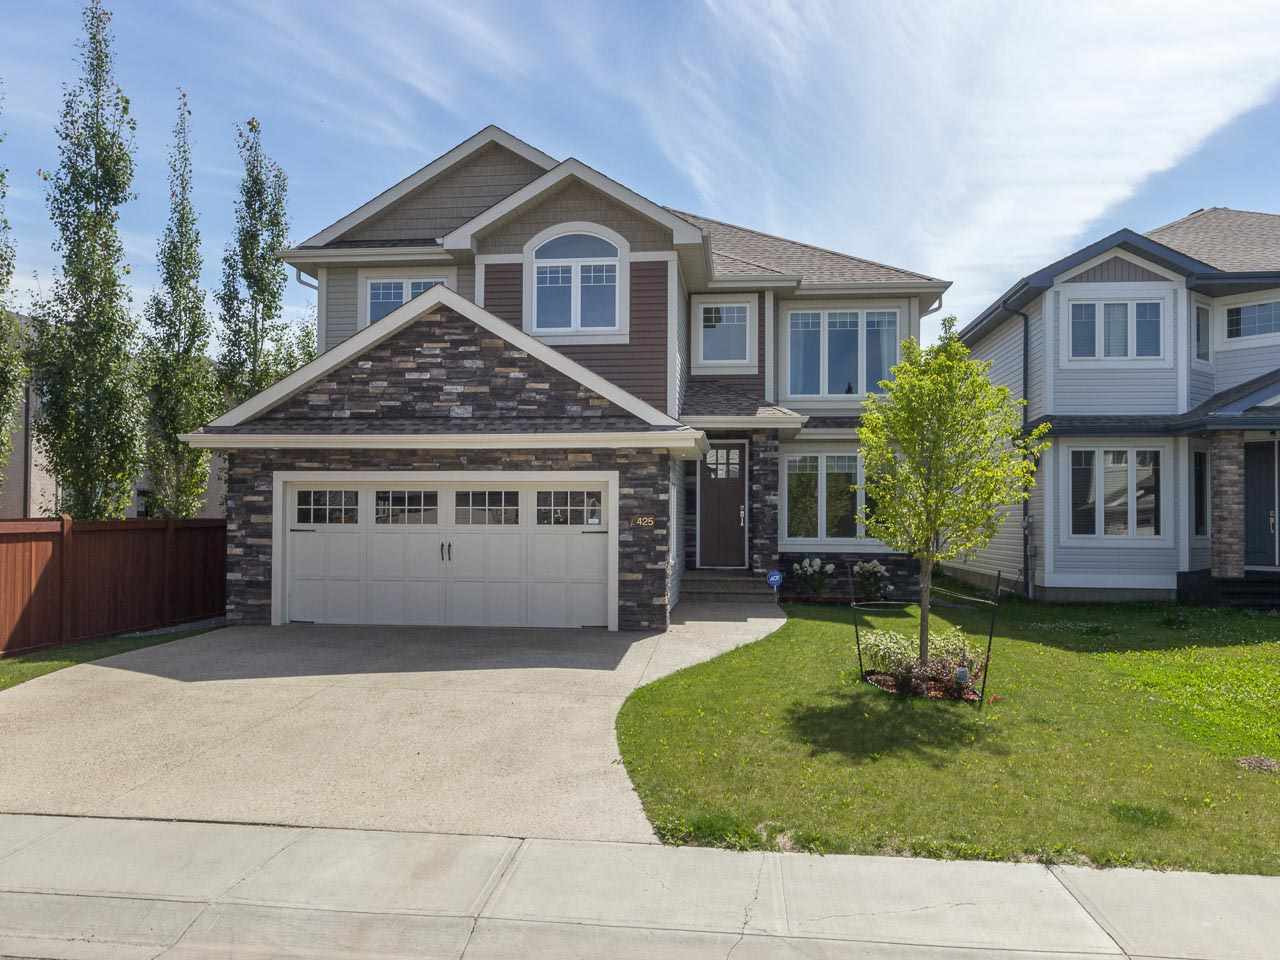 Main Photo: 425 CALLAGHAN Court in Edmonton: Zone 55 House for sale : MLS® # E4077044